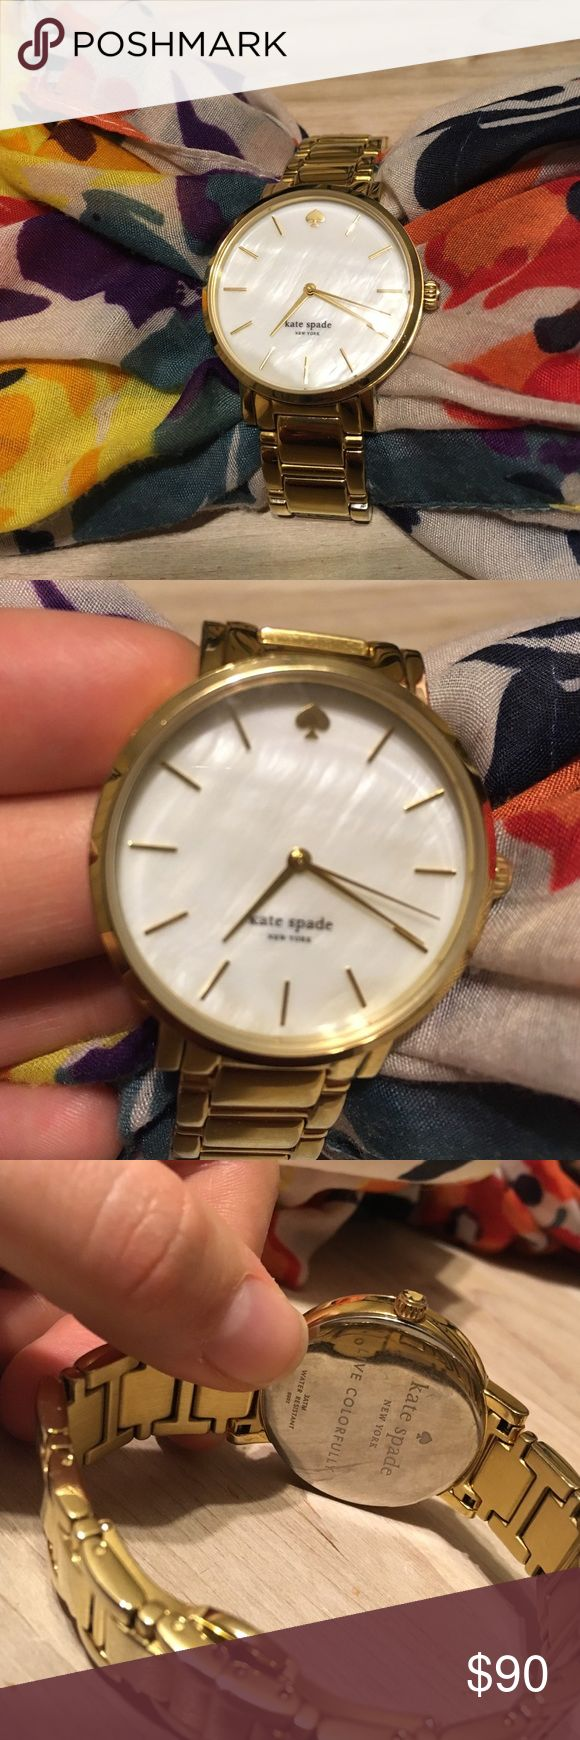 Kate Spade gold watch Authentic Kate Spade watch. Stainless steel with gold color. Simply beautiful mother of pearl face. Needs new battery. No scratches on face of watch! Good used condition. Easy to use clasp for easy fit. Can remove some of the links to make even smaller for small wrists. kate spade Accessories Watches